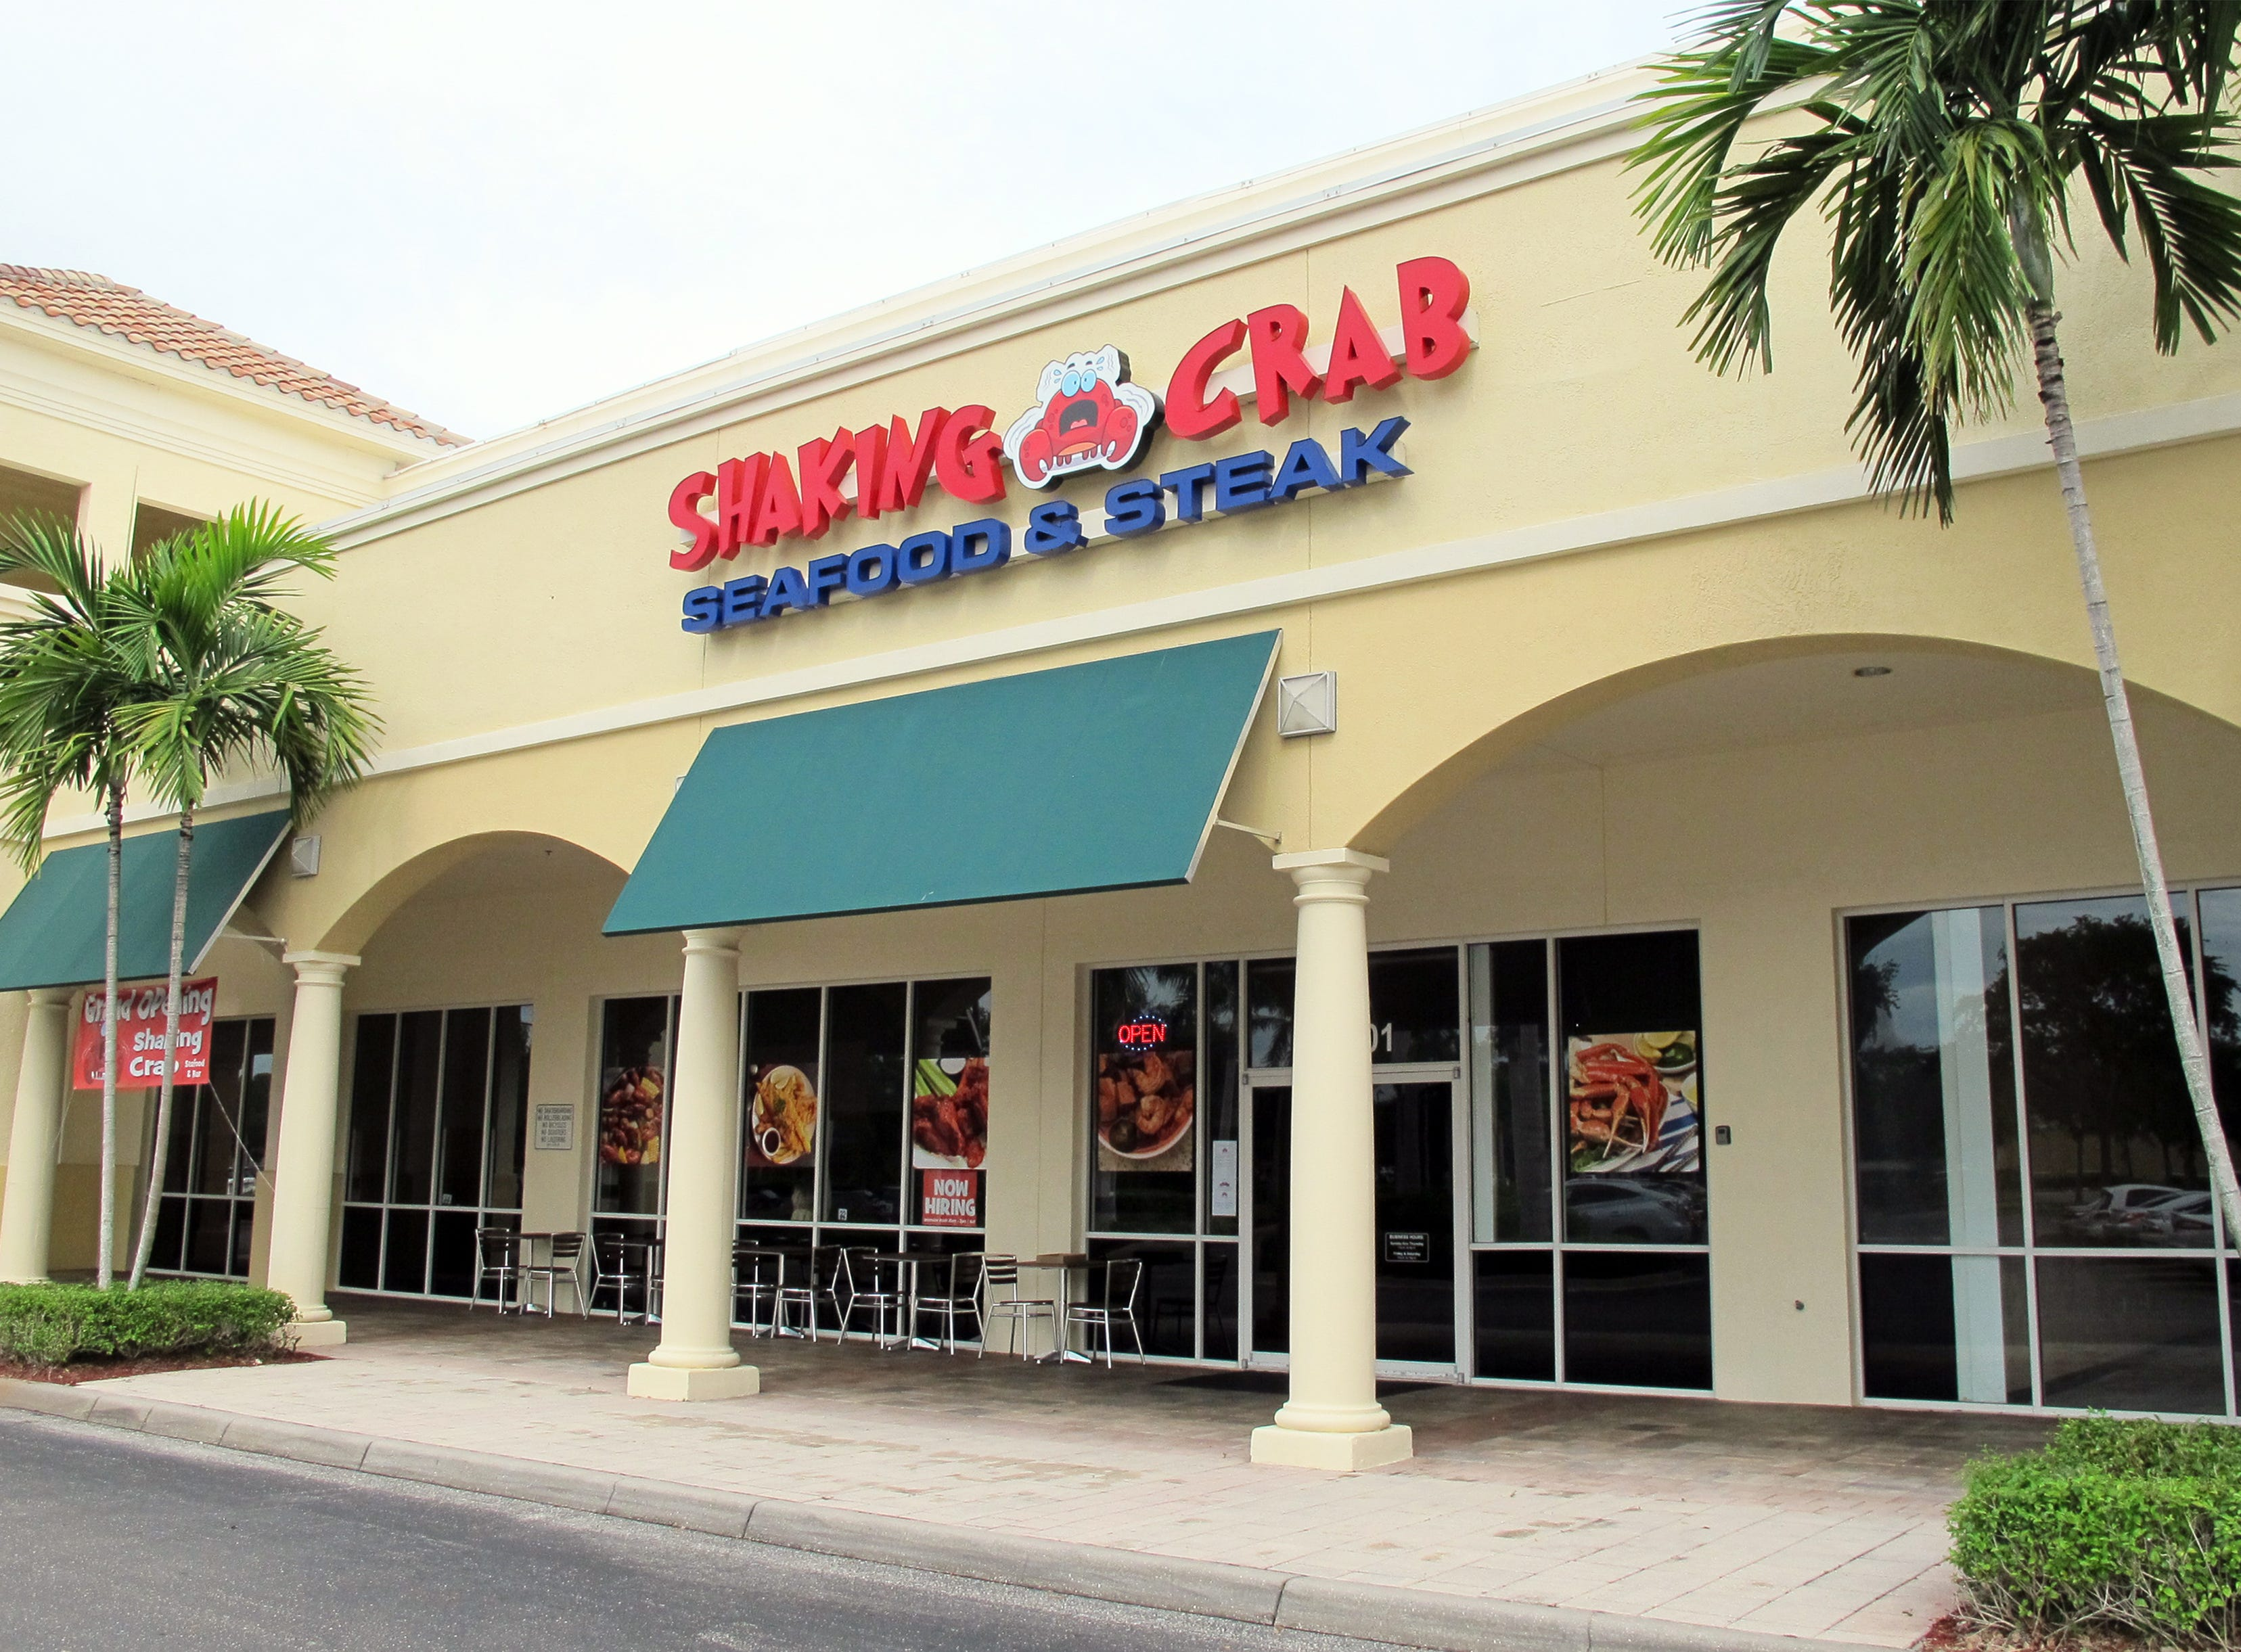 Cajun-style seafood dominates the menu for Shaking Crab restaurant and bar that opened Oct. 1, 2018, in The Prado at Spring Creek retail center off U.S. 41. in Bonita Springs.